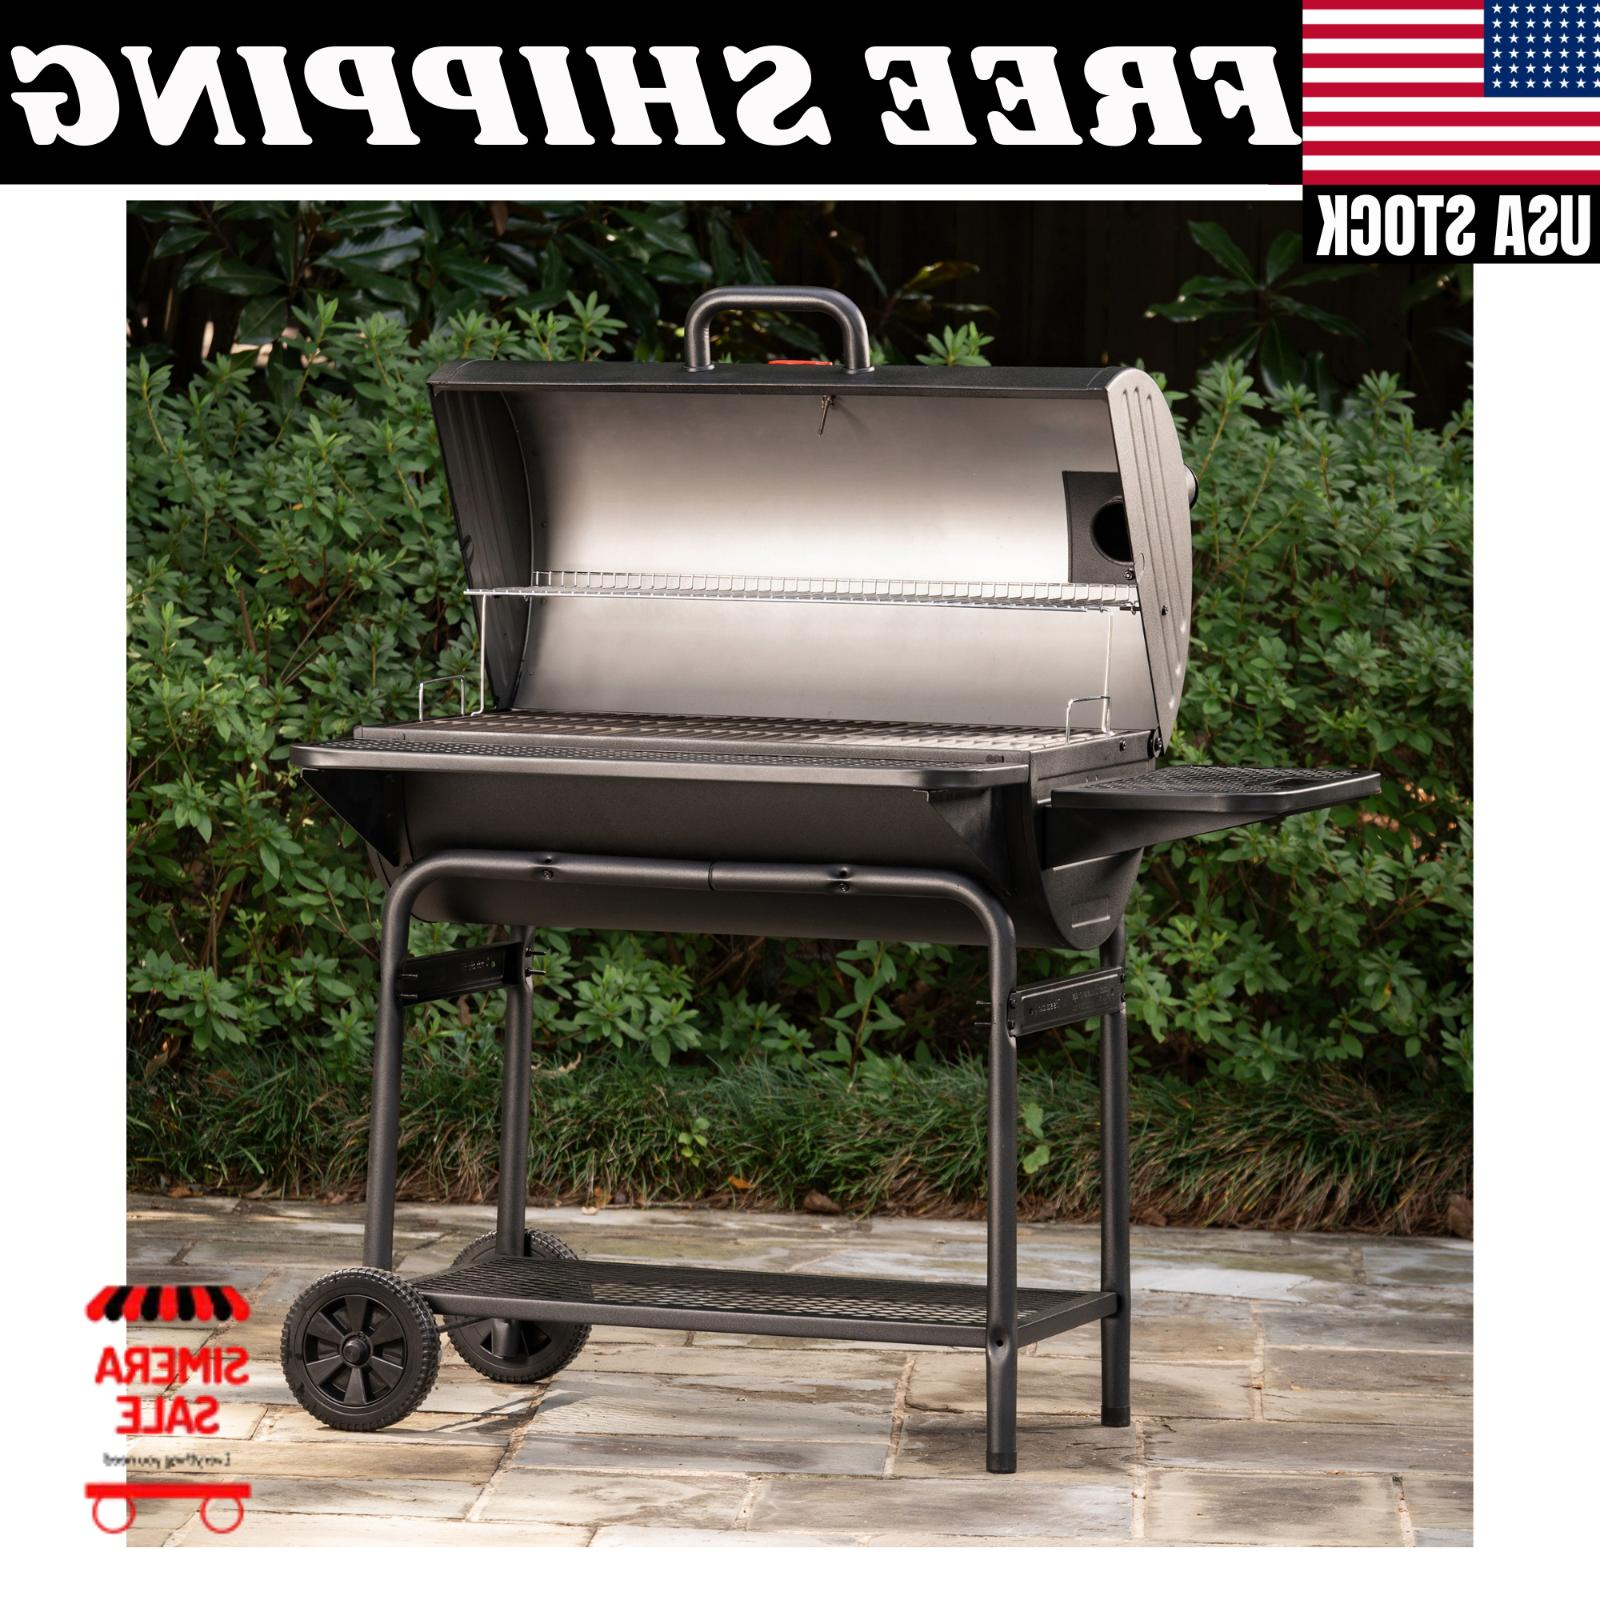 Large Grill Grills Backyard Cooker